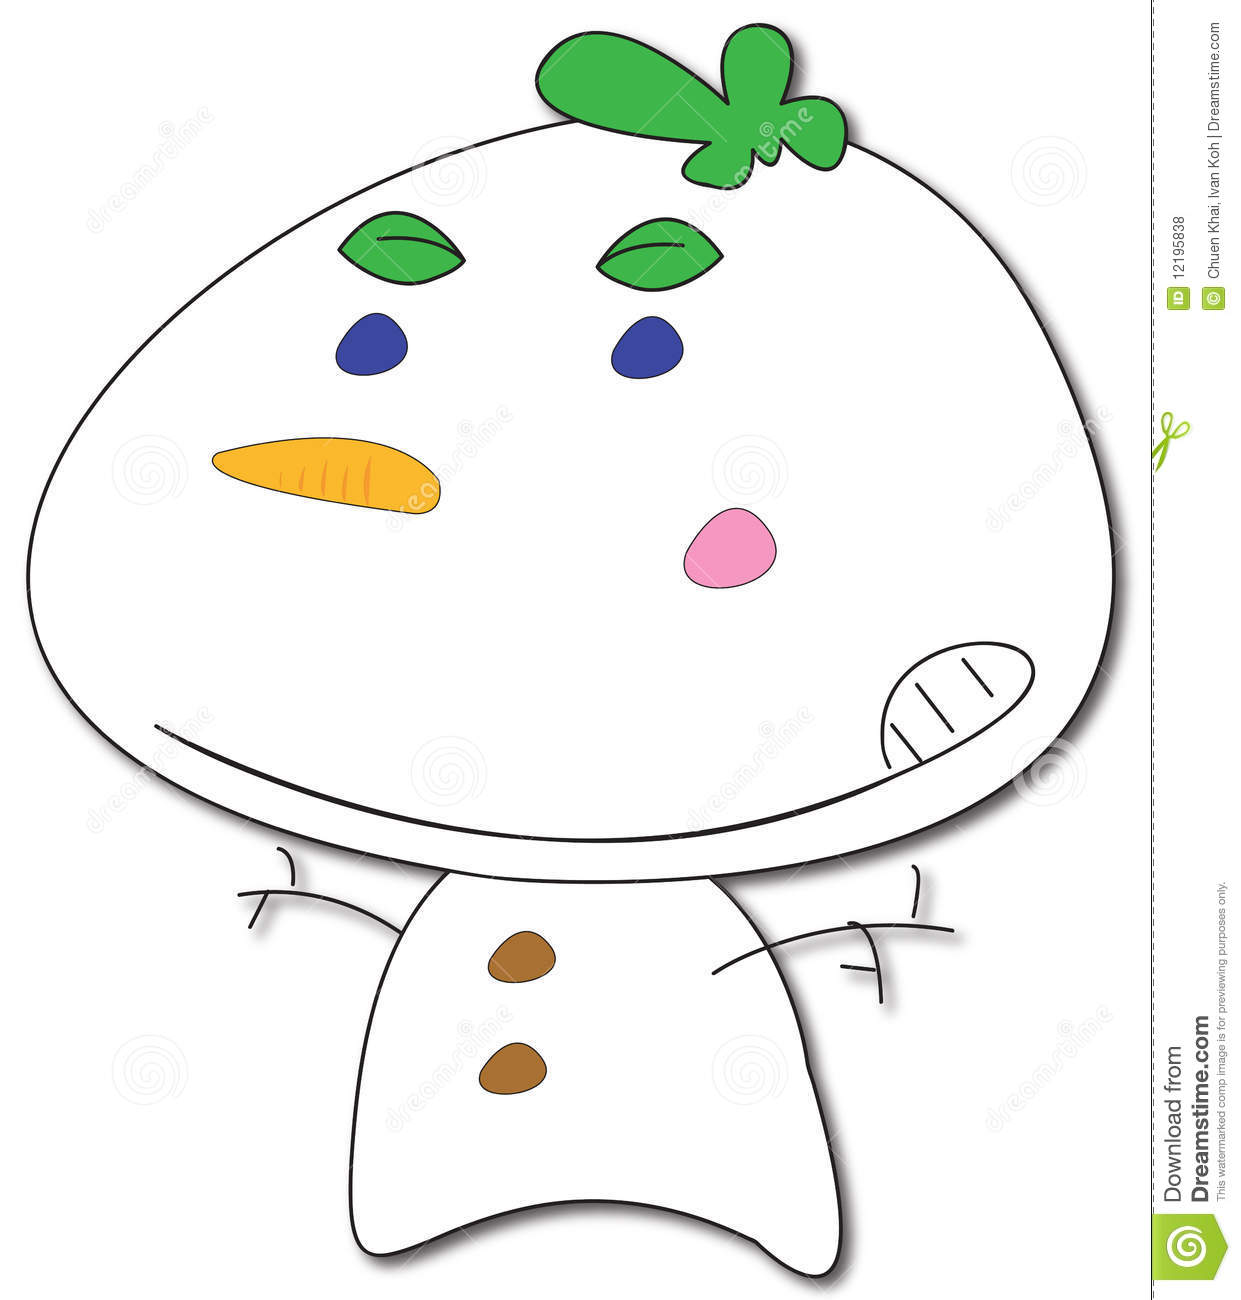 frosty snowman cartoon royalty free stock photos image 12195838